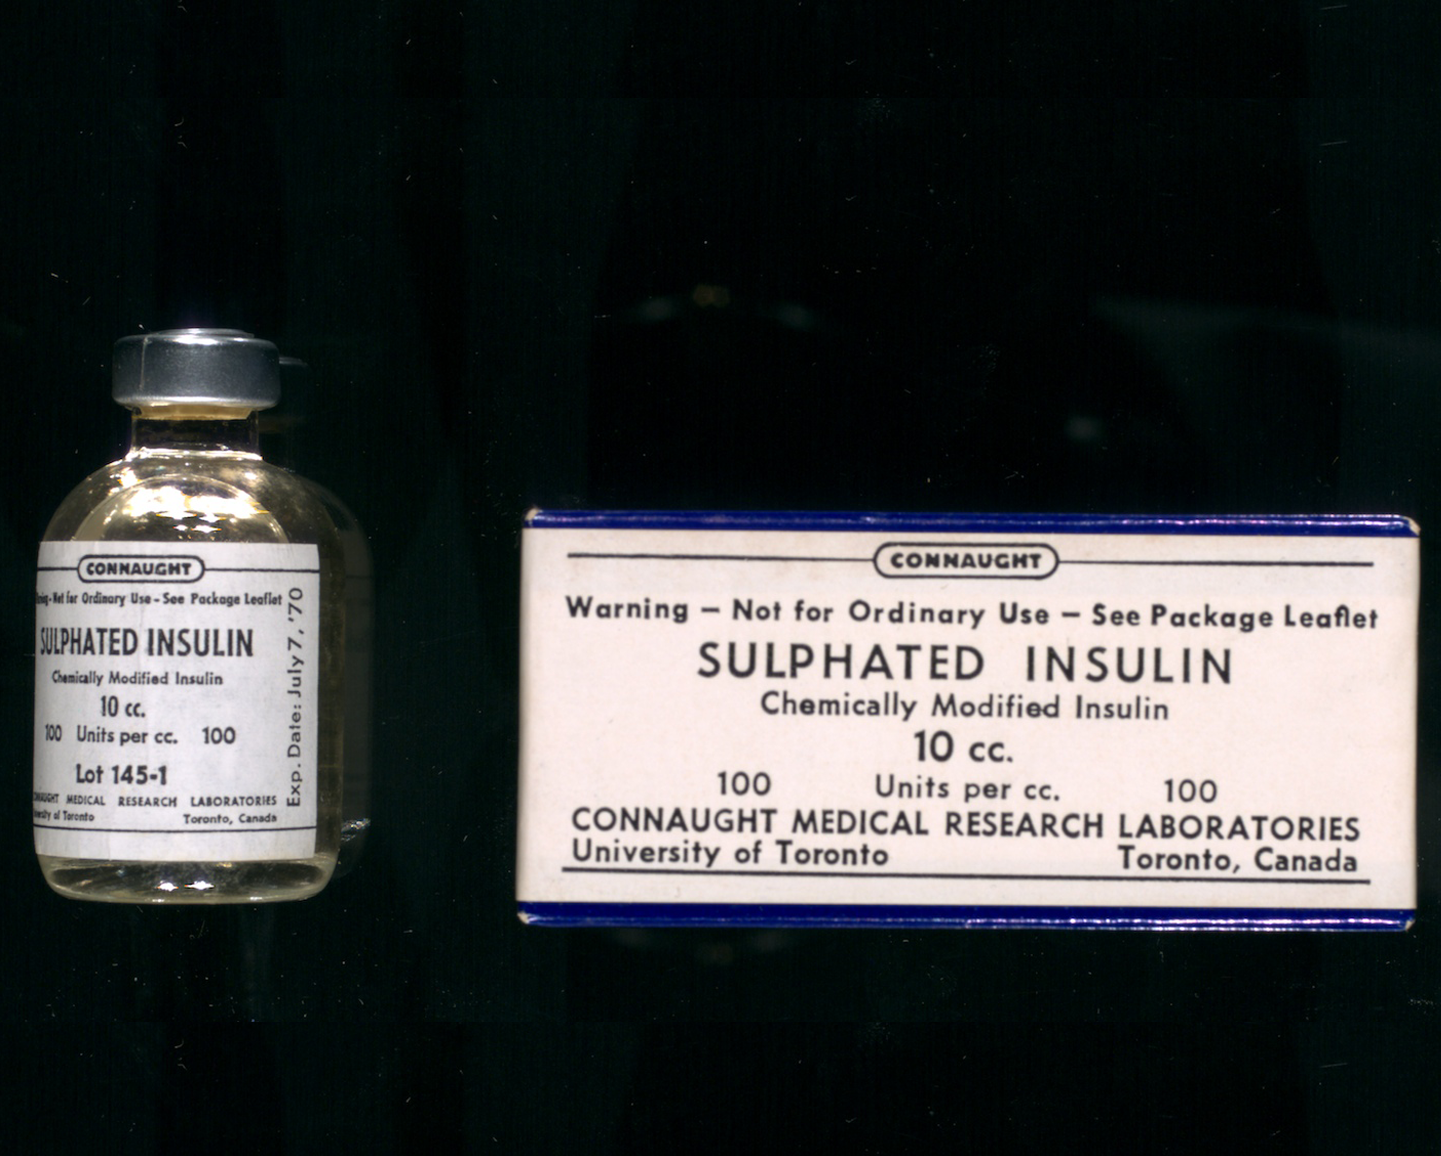 Vial and package of Sulphated Insulin, prepared by Connaught Medical Research Laboratories, with a July 1970 expiry date.